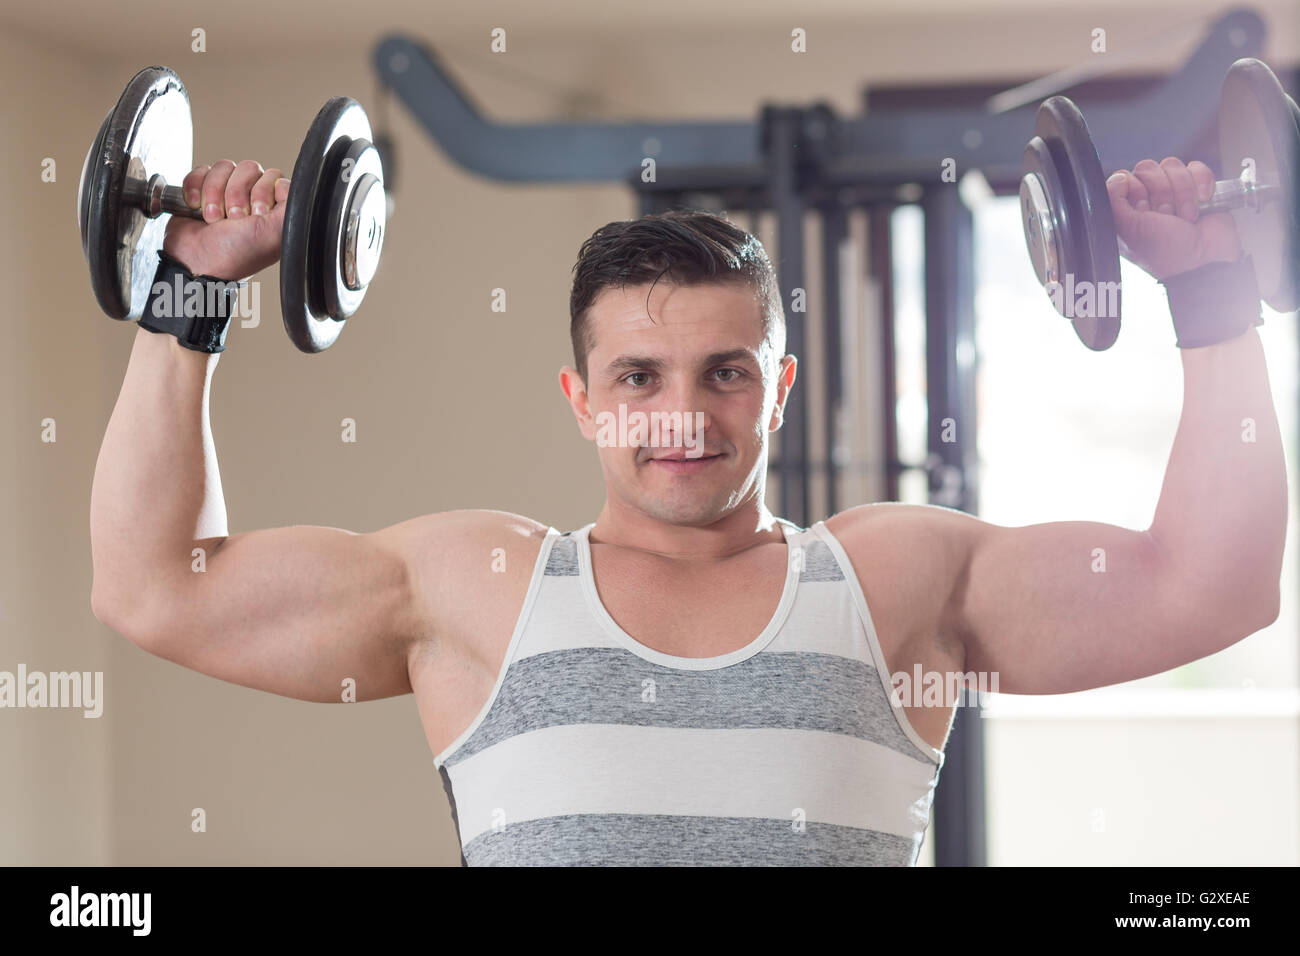 Athlete muscular bodybuilder man demonstrates his muscles in the gym - Stock Image